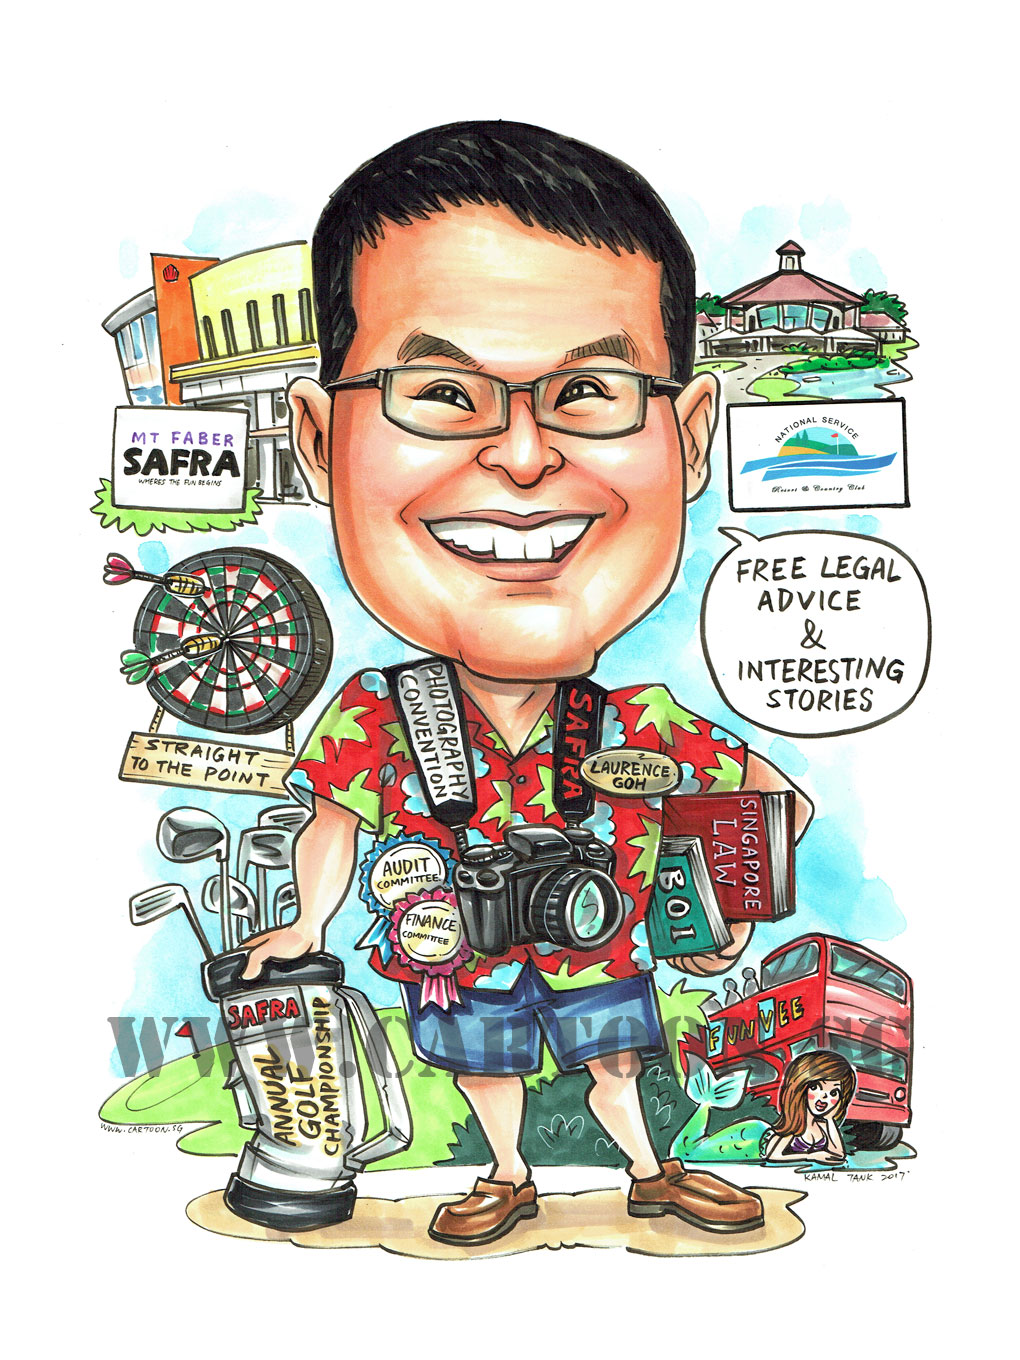 2017-07-21-Caricature-Singapore-safra-mermaid-golf-darts-bus-camera.jpg